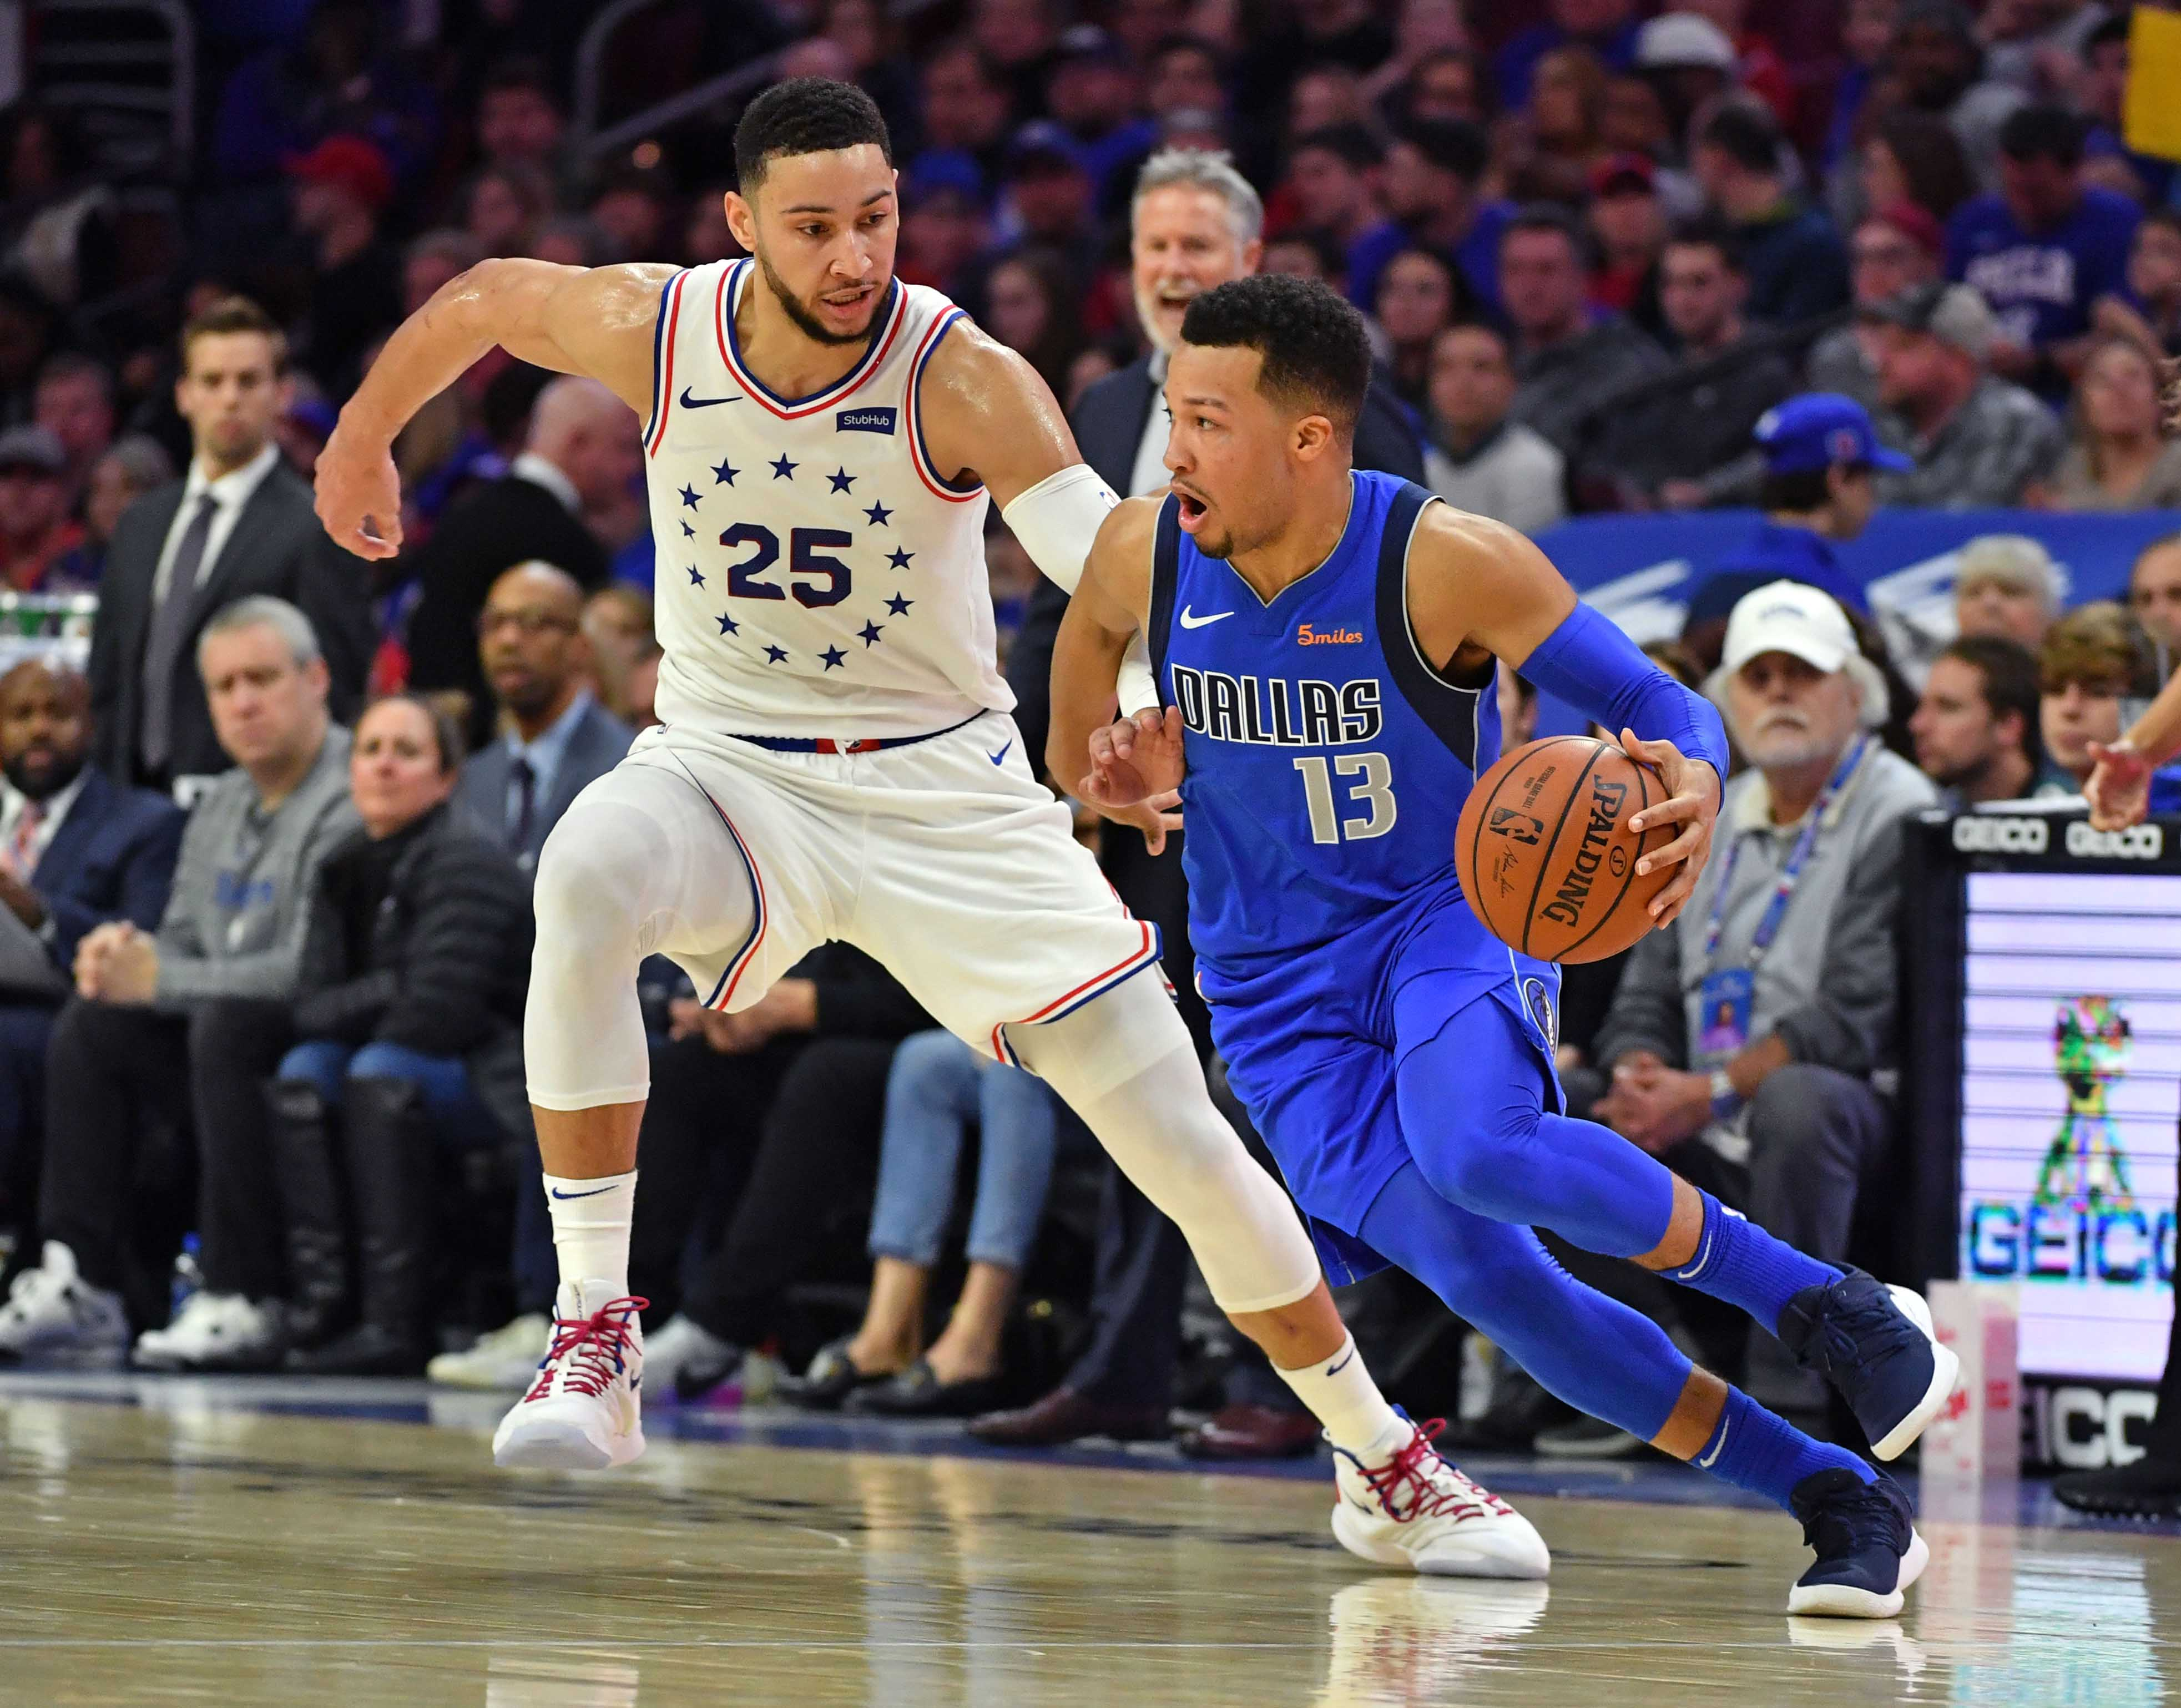 c5365f0effe Sixers vs. Wizards  Preview and Game Info